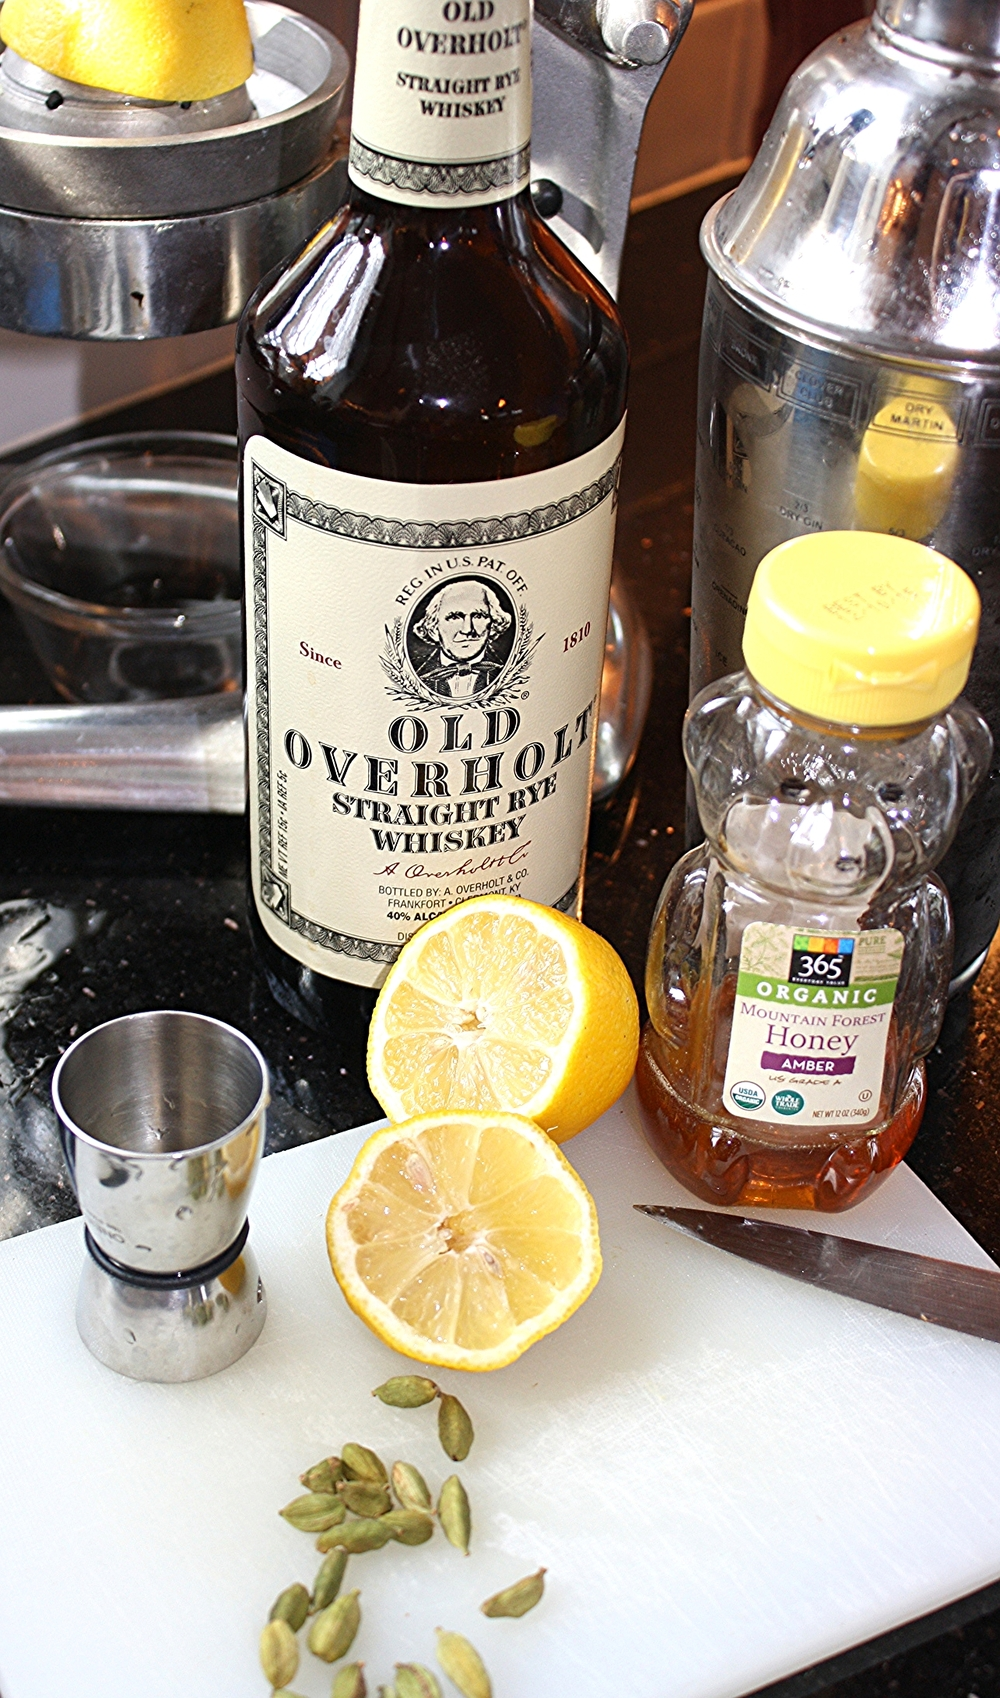 Old Overholt is an American Straight Rye Whiskey distilled by A. Overholt & Co established in 1810.